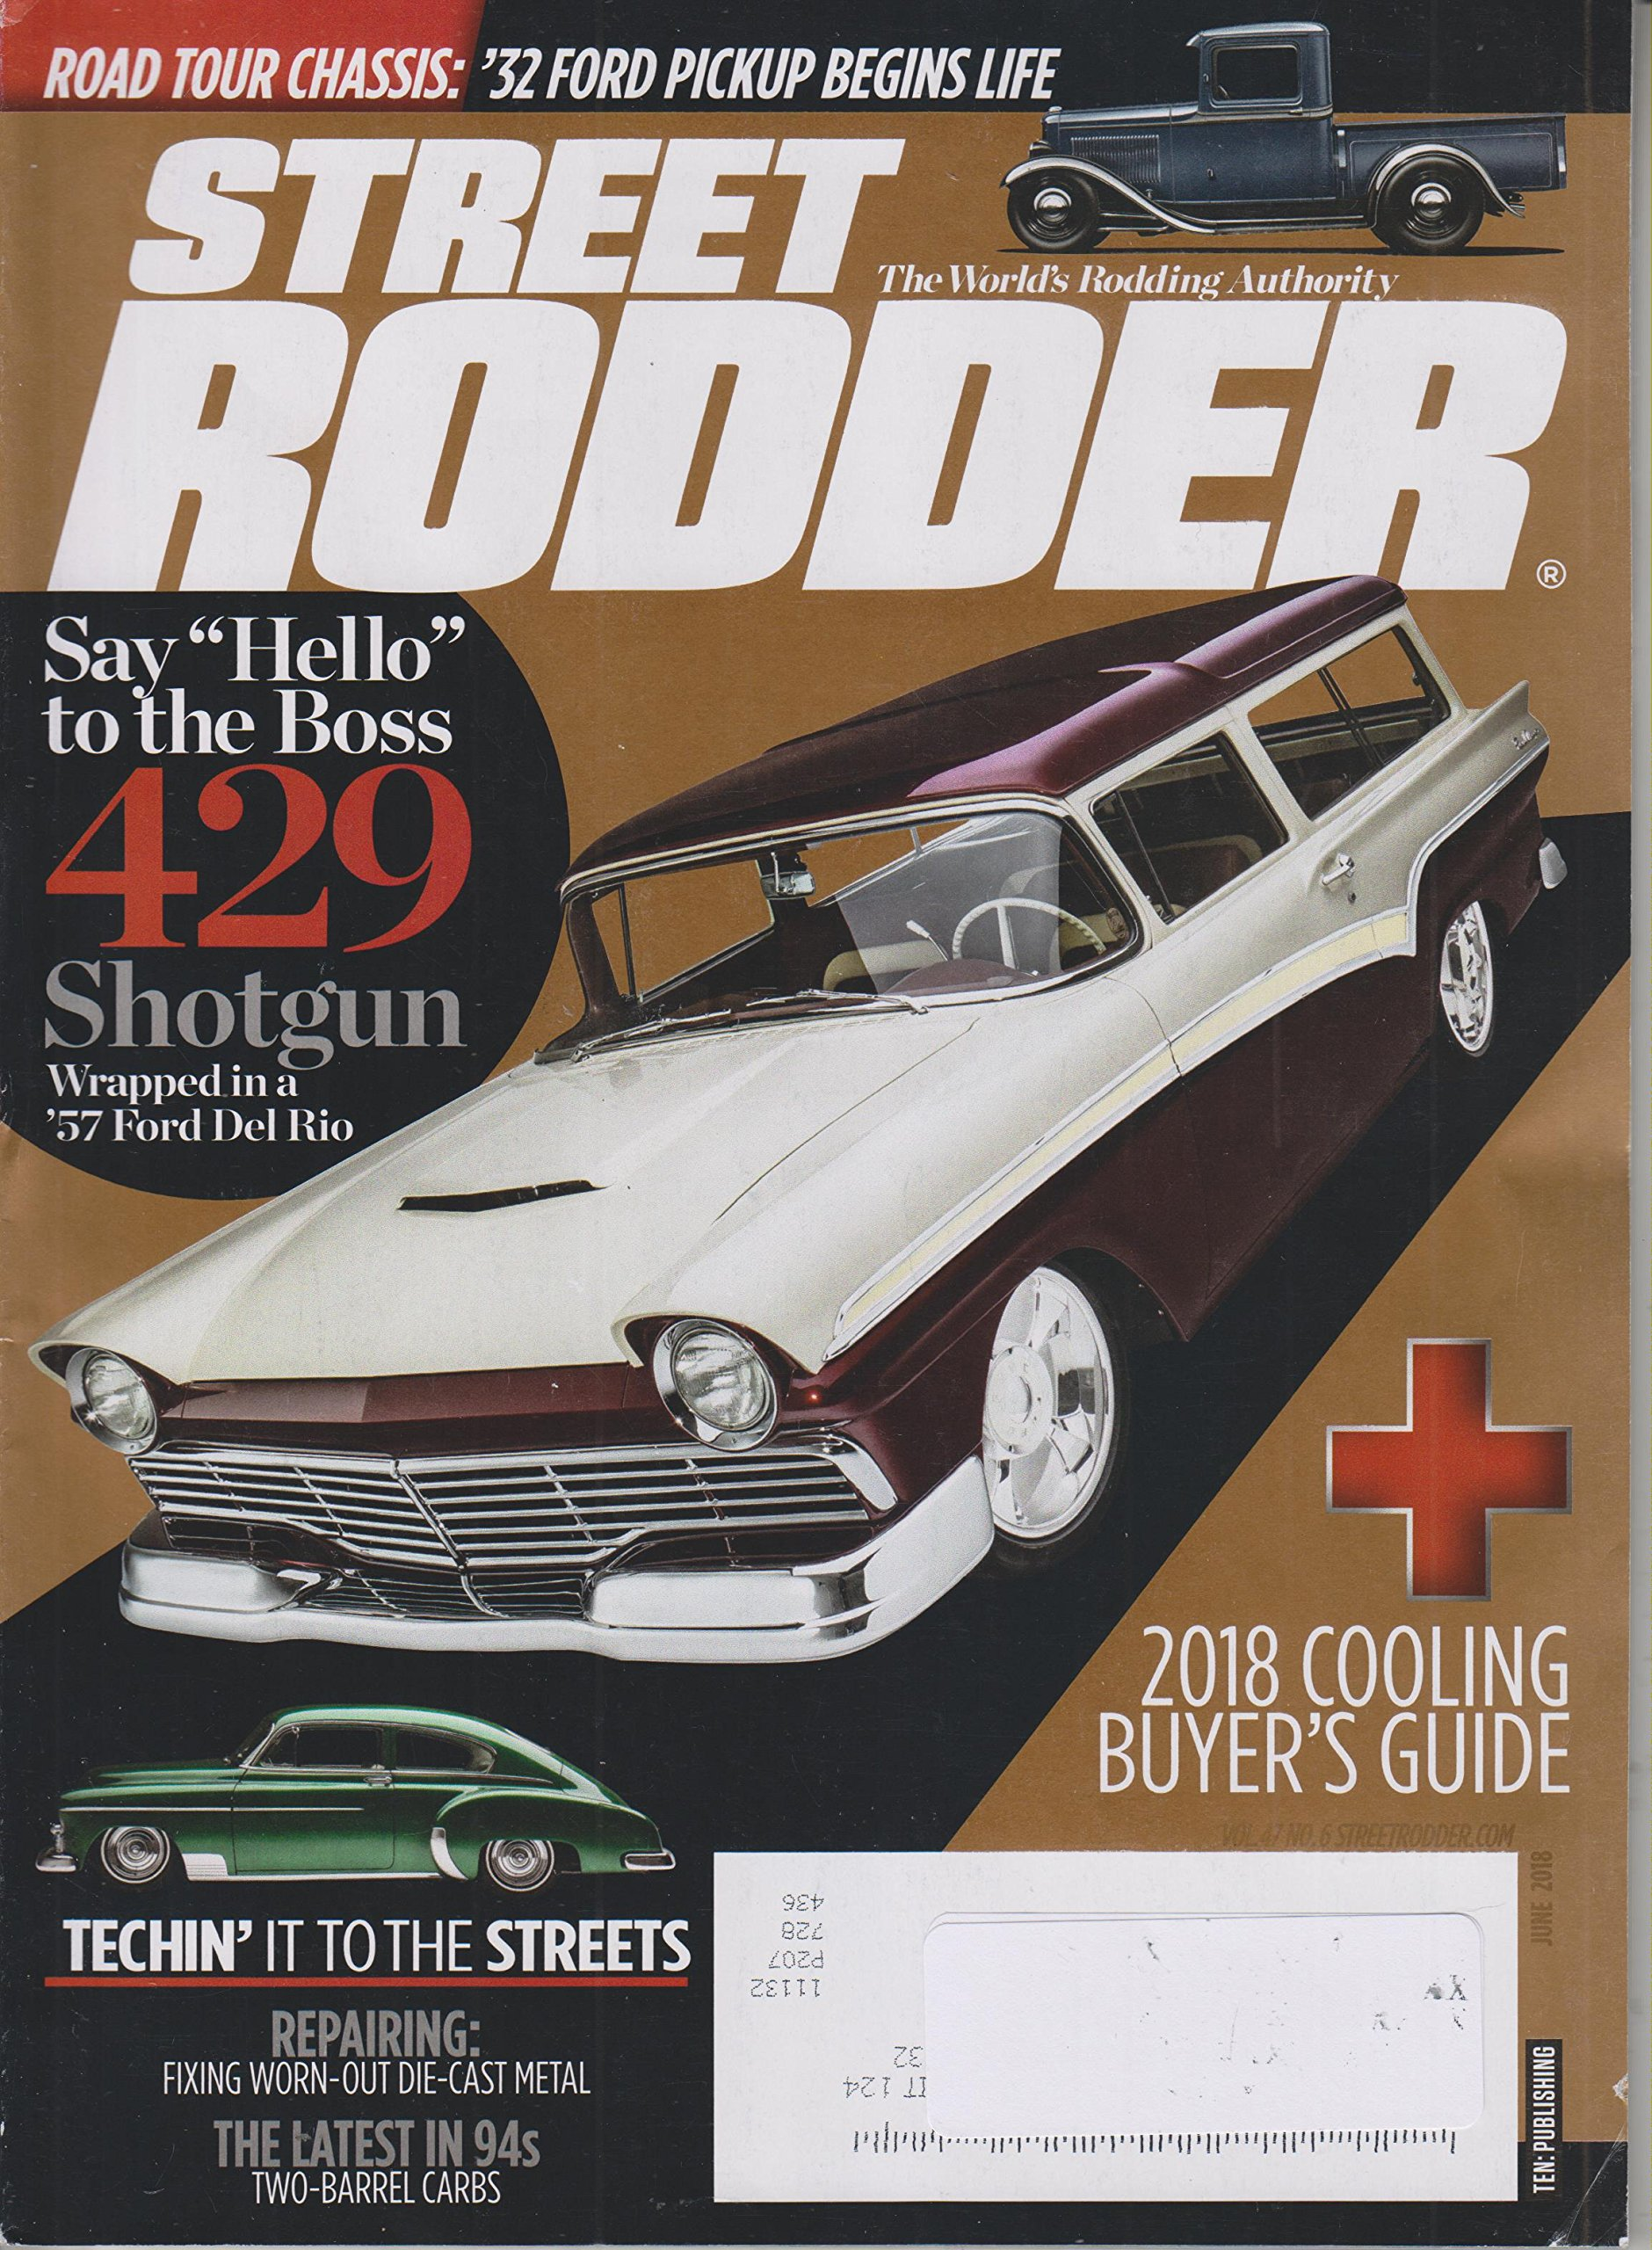 """Street Rodder June 2018 Say """"Hello"""" to the Boss 429 Shotgun Wrapped in a '557 Ford Del Rio pdf"""